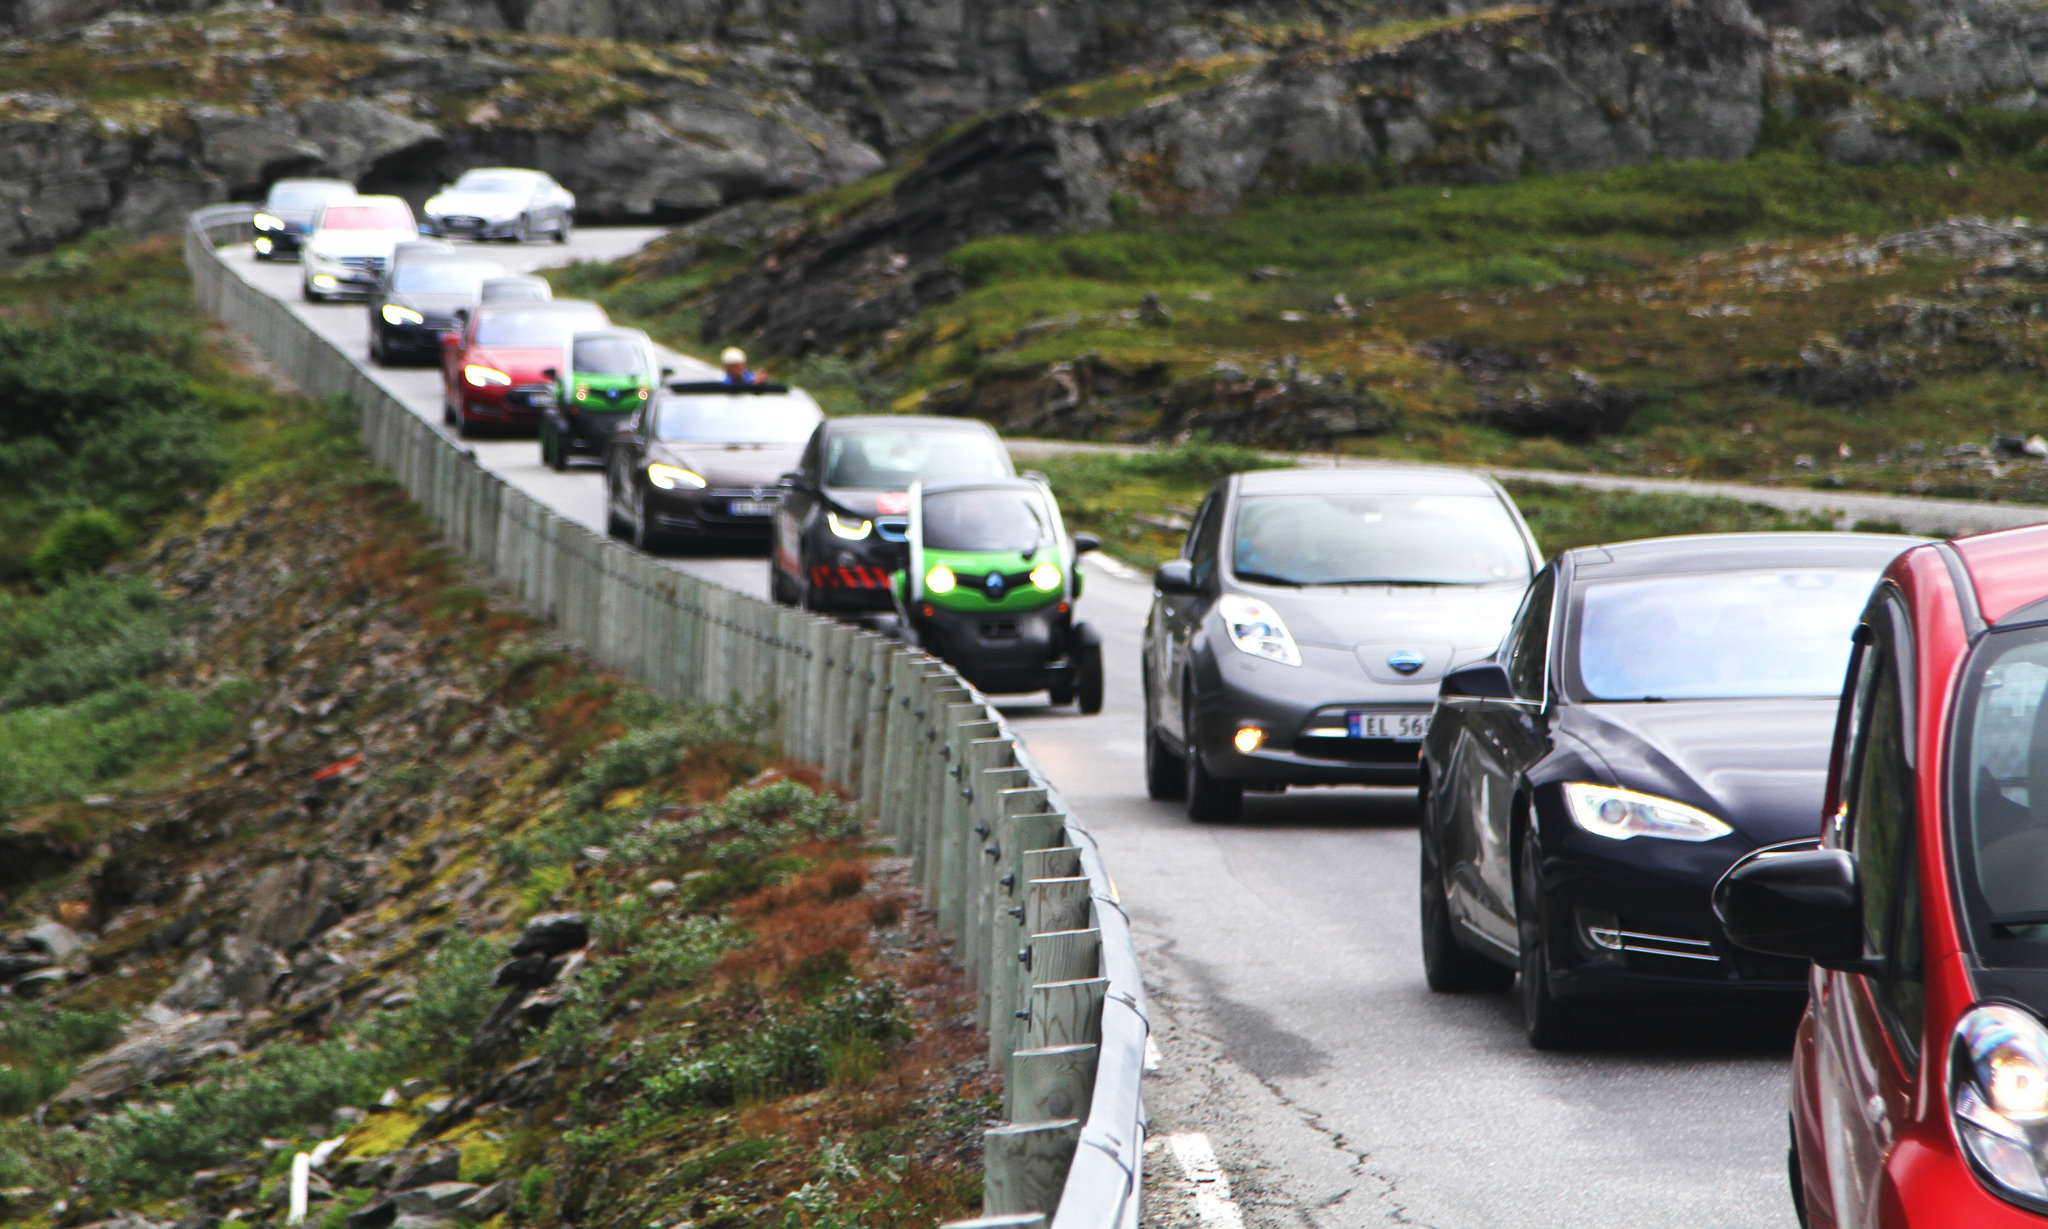 World Will Follow Norway's Lead On Electric Cars, Minister